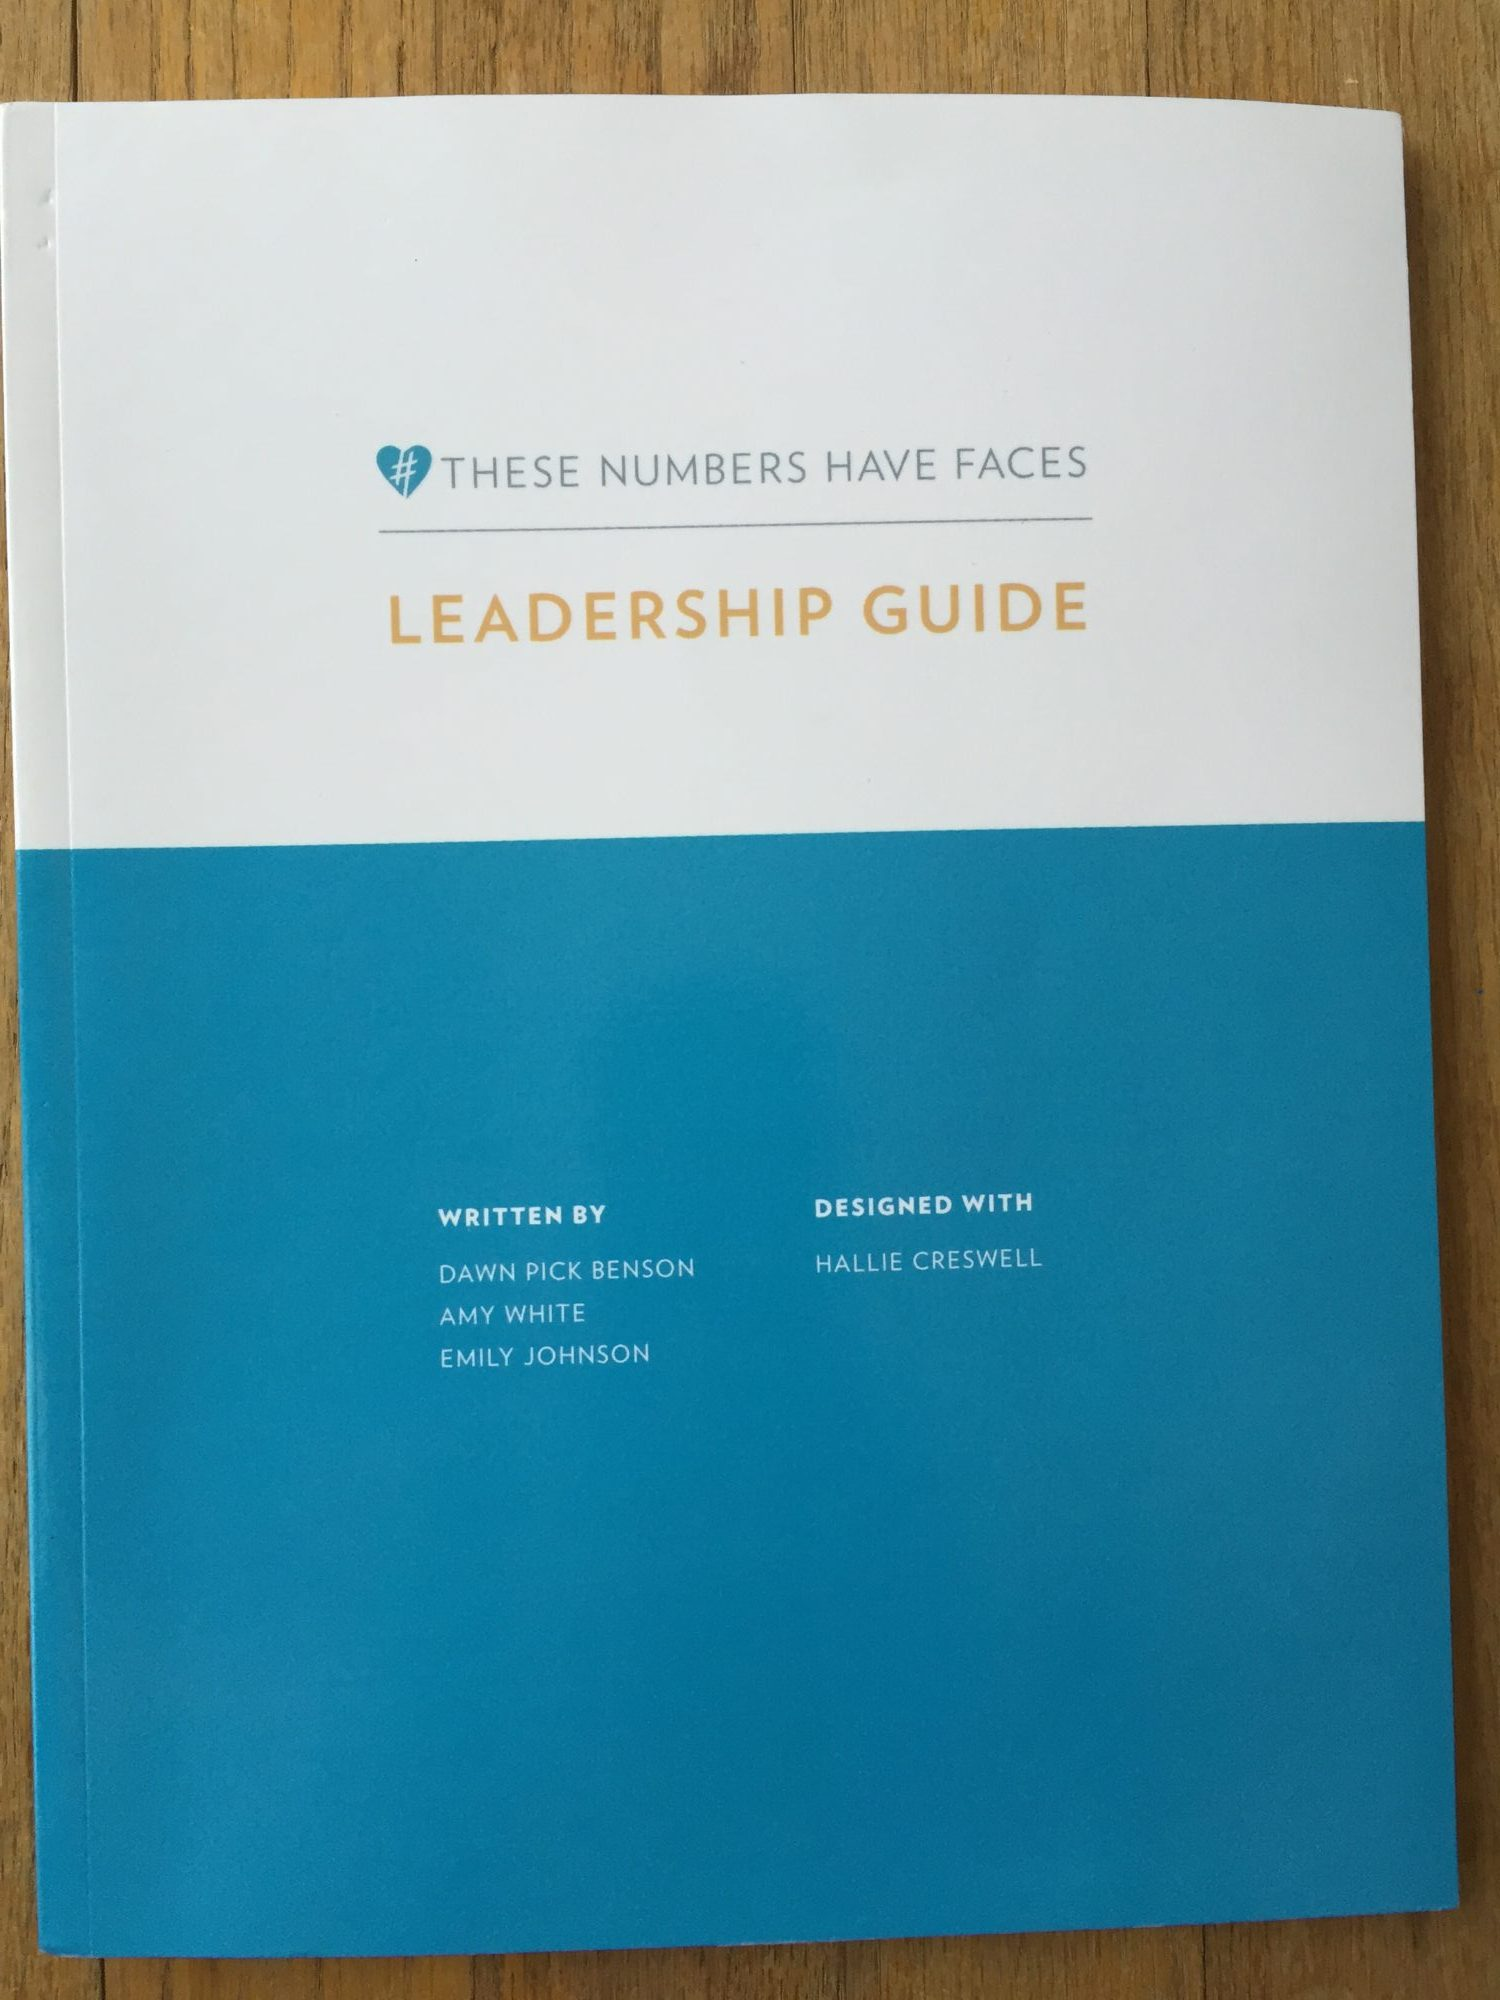 TNHF leadership guide 2